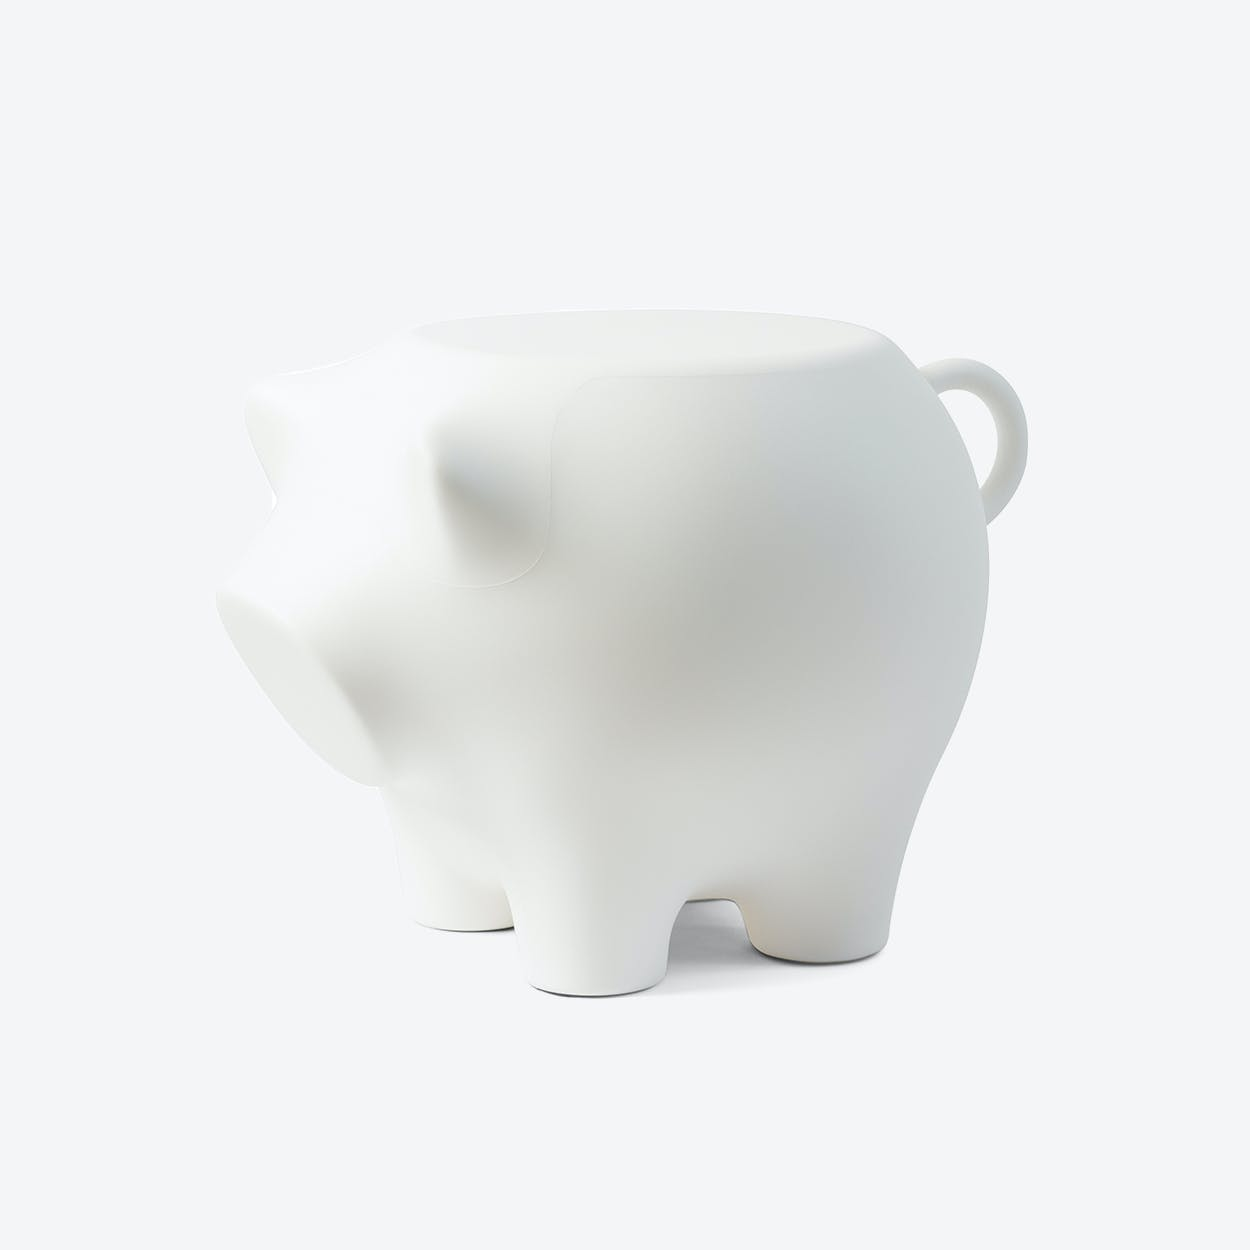 Sidepig in White